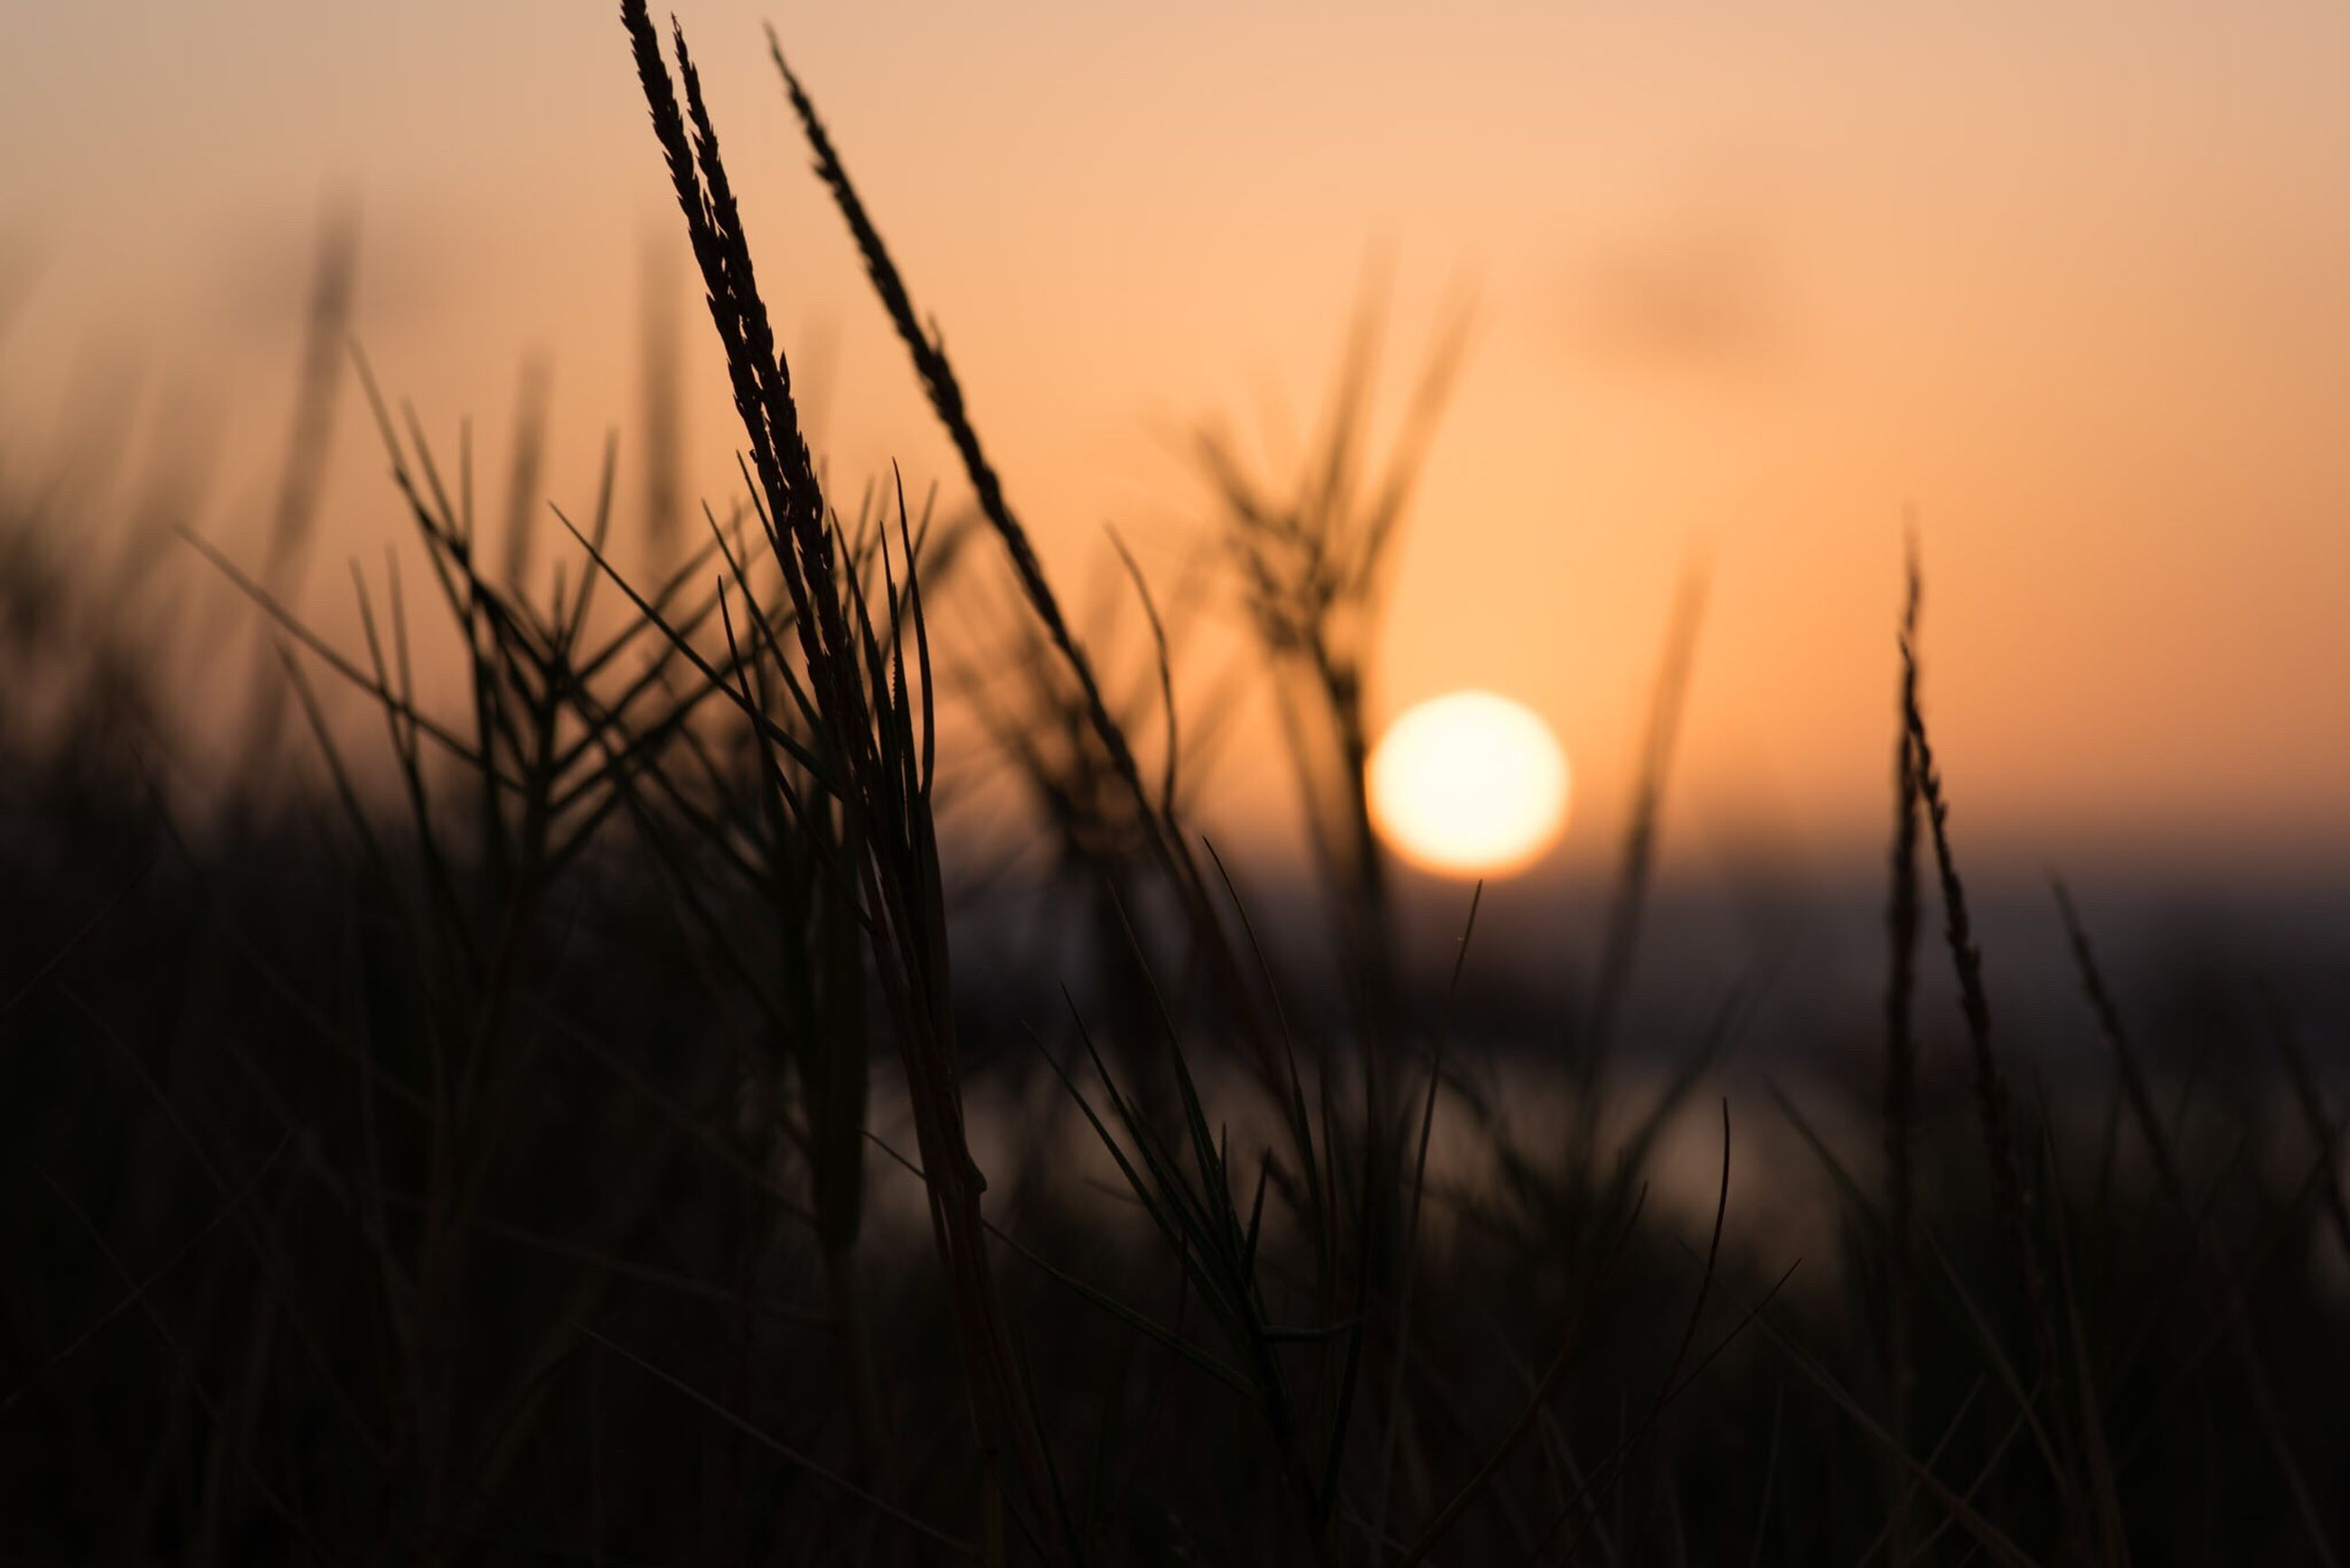 sunset, growth, sun, plant, nature, grass, beauty in nature, focus on foreground, tranquility, tranquil scene, field, close-up, scenics, orange color, stem, silhouette, selective focus, sky, idyllic, stalk